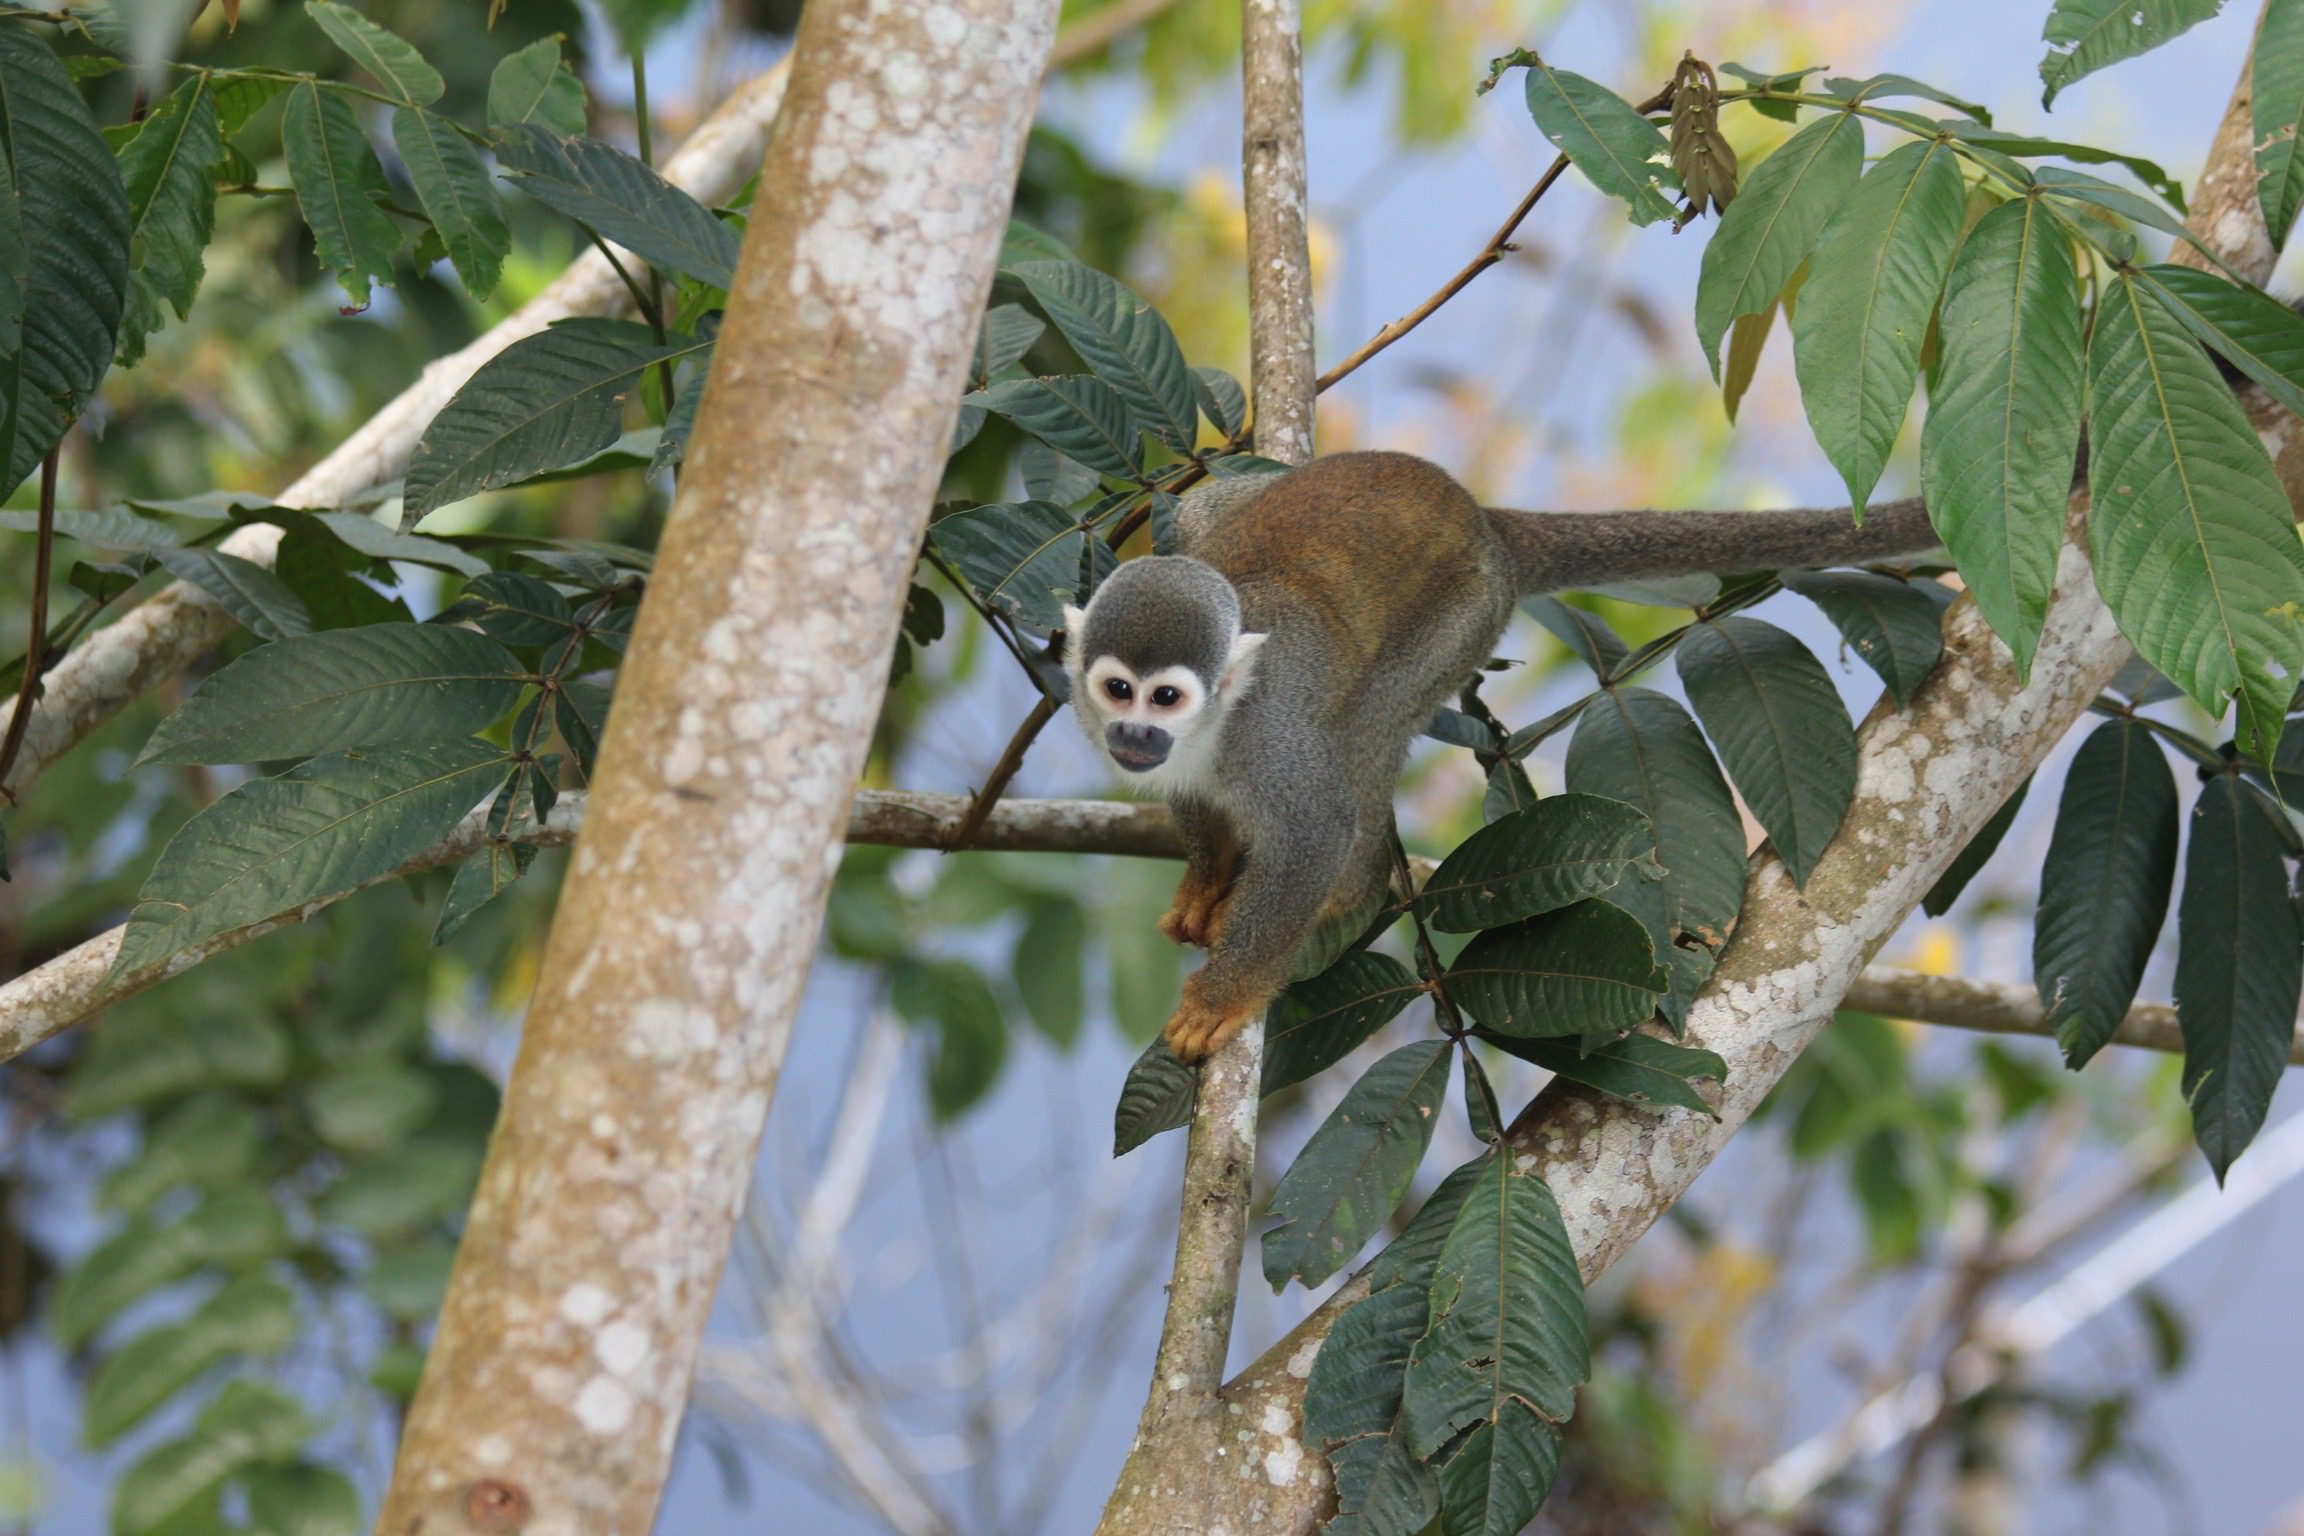 Monkey in tree in Ecuador Amazon